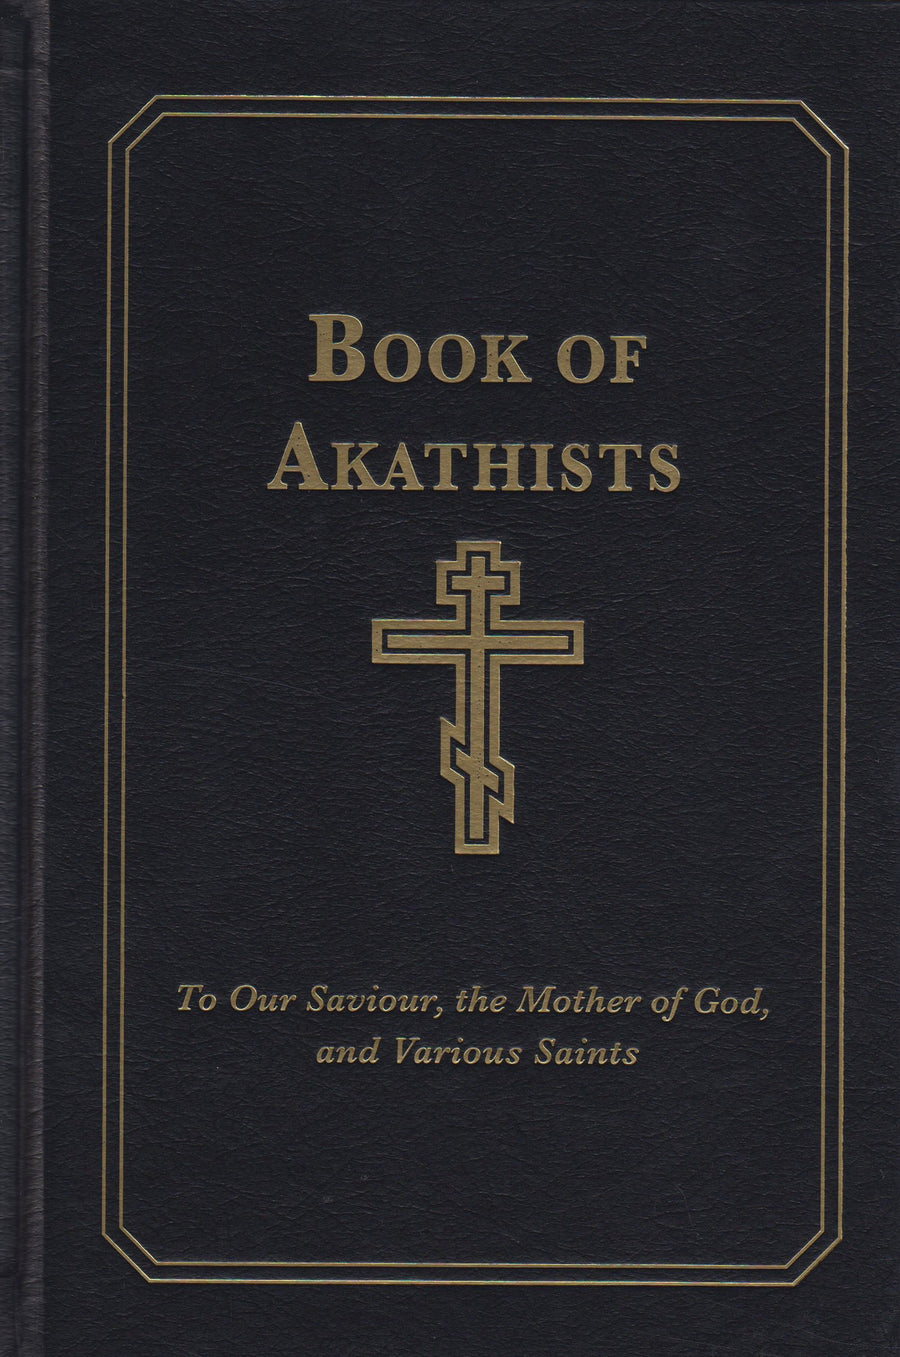 Book of Akathists